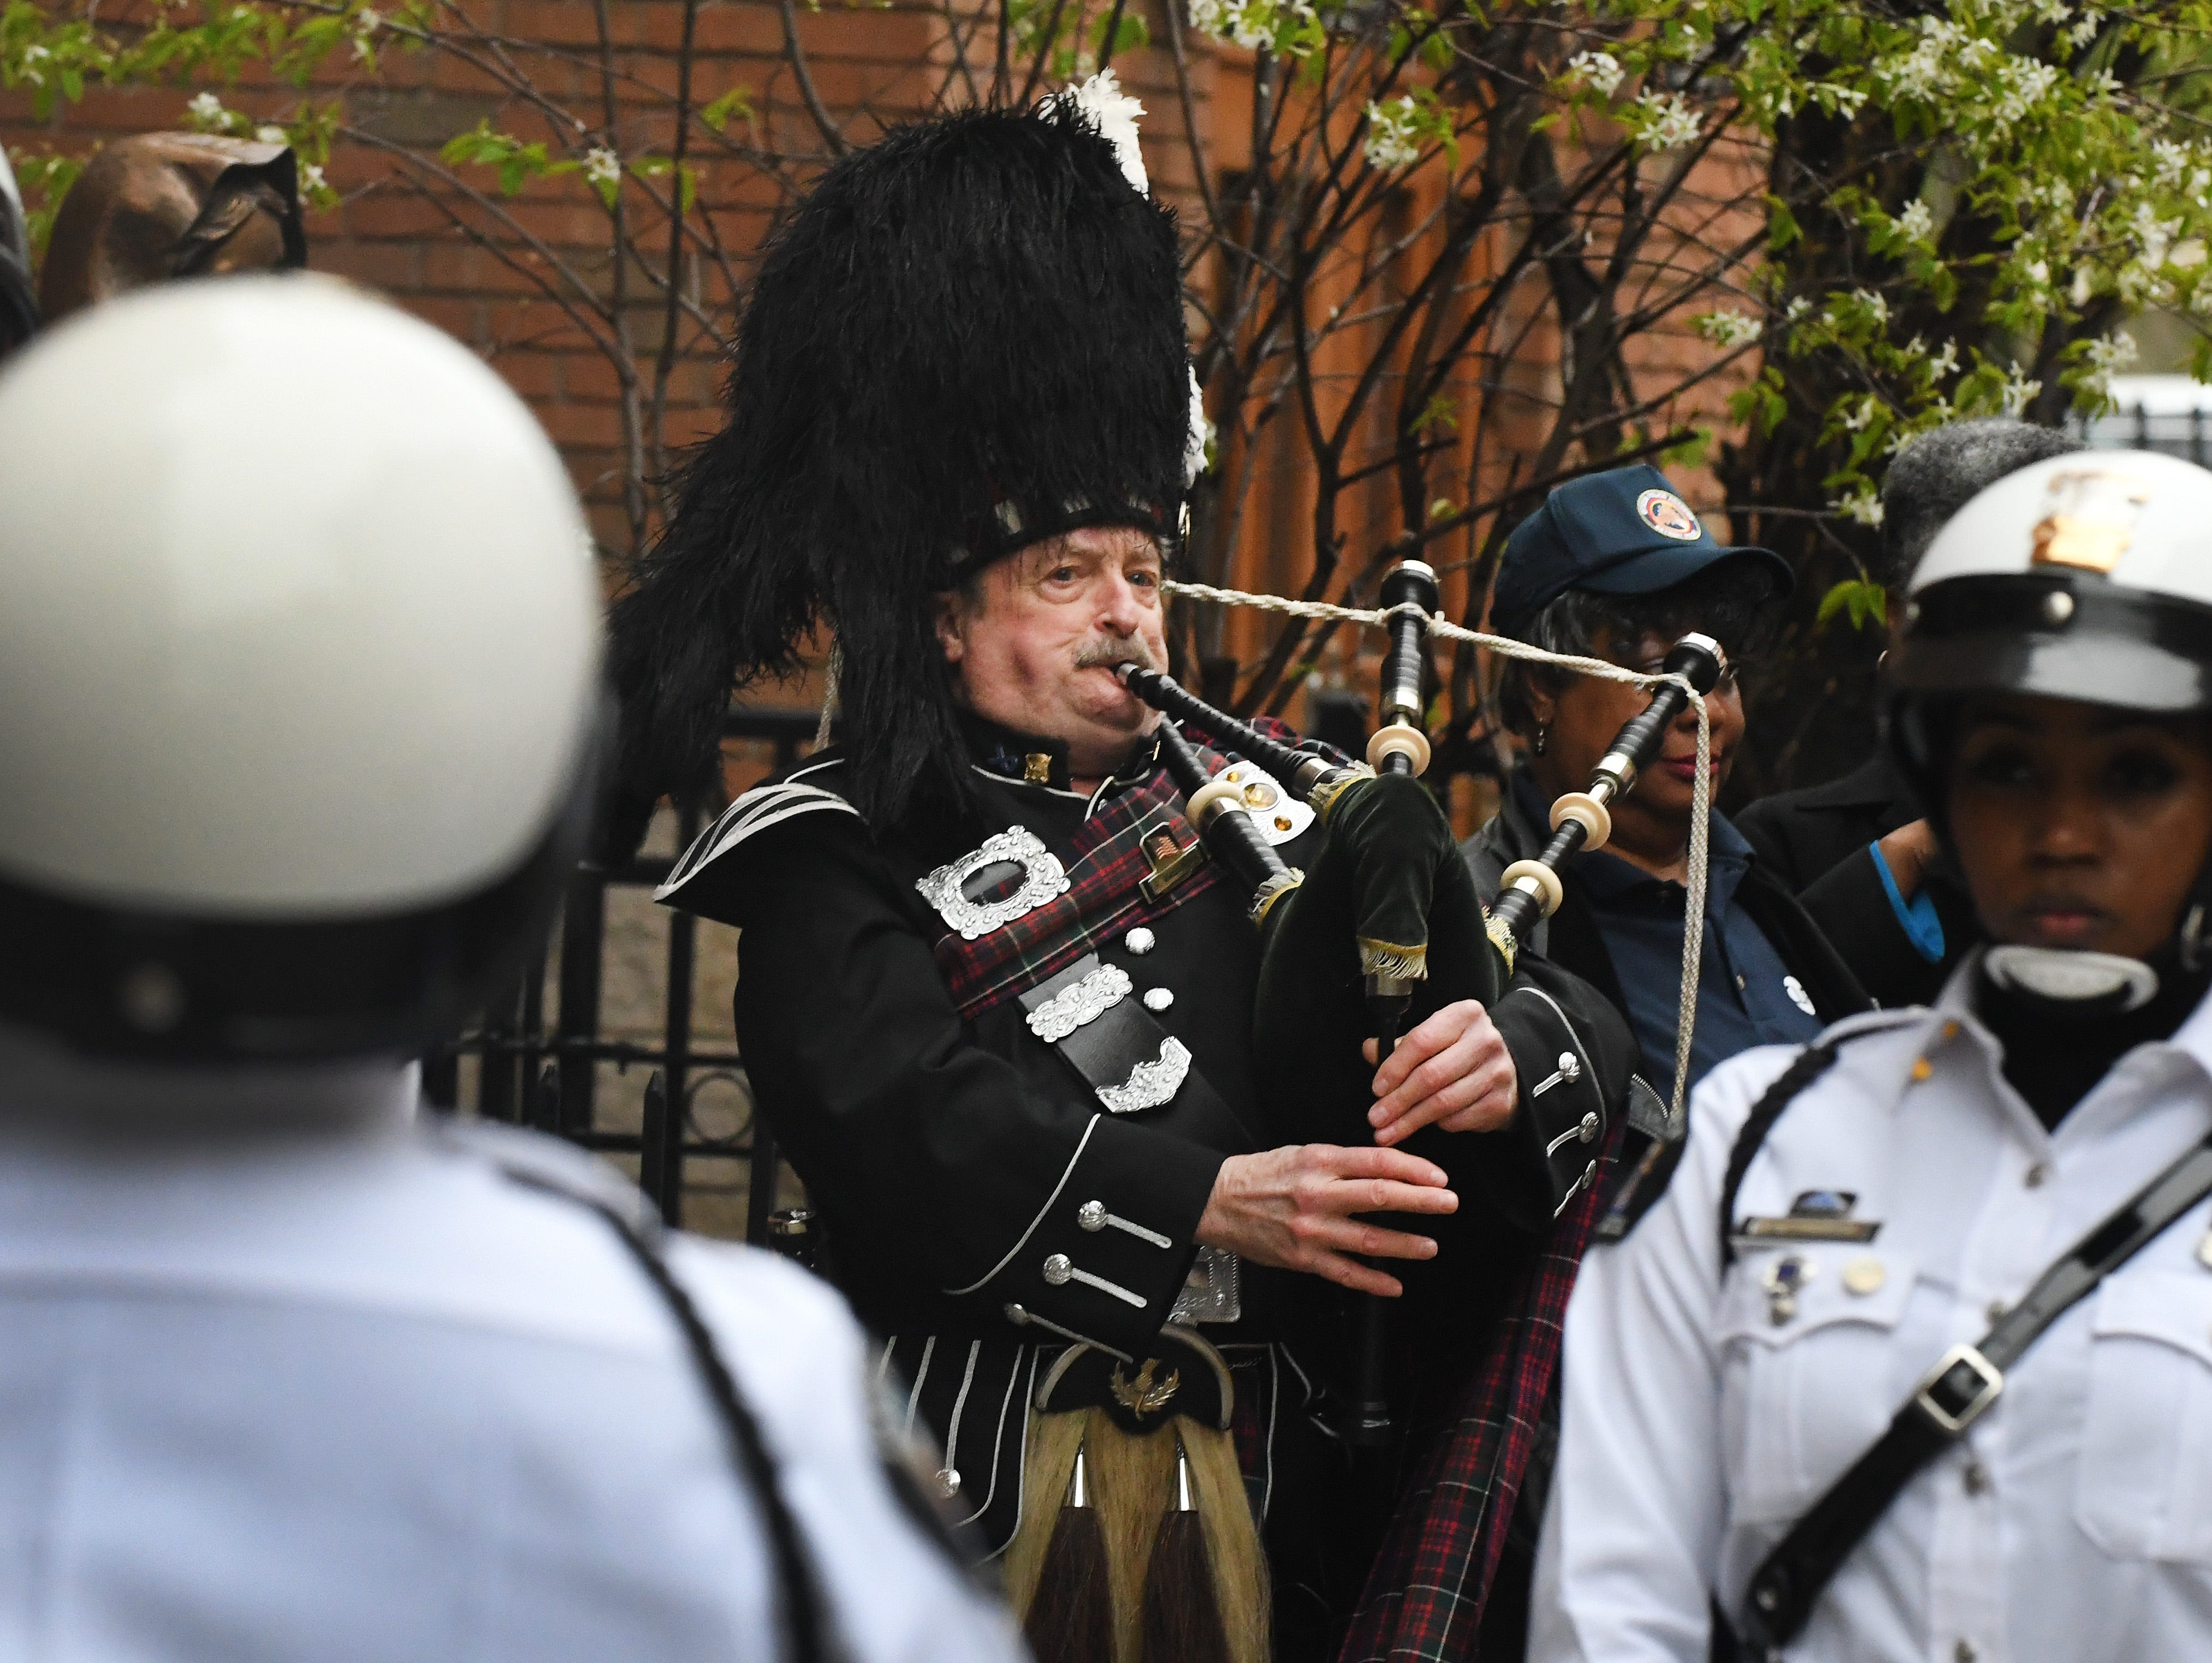 Bagpipes are played as Detroit Police officers make their way to the 46th Annual Detroit Police Interfaith Memorial Service.  Detroit Police Department march and 46th Annual Detroit Police Interfaith Memorial Service to honor fallen officers at Old St. Mary's church in Detroit, Michigan on May 3, 2019. (Image by Daniel Mears/ The Detroit News).